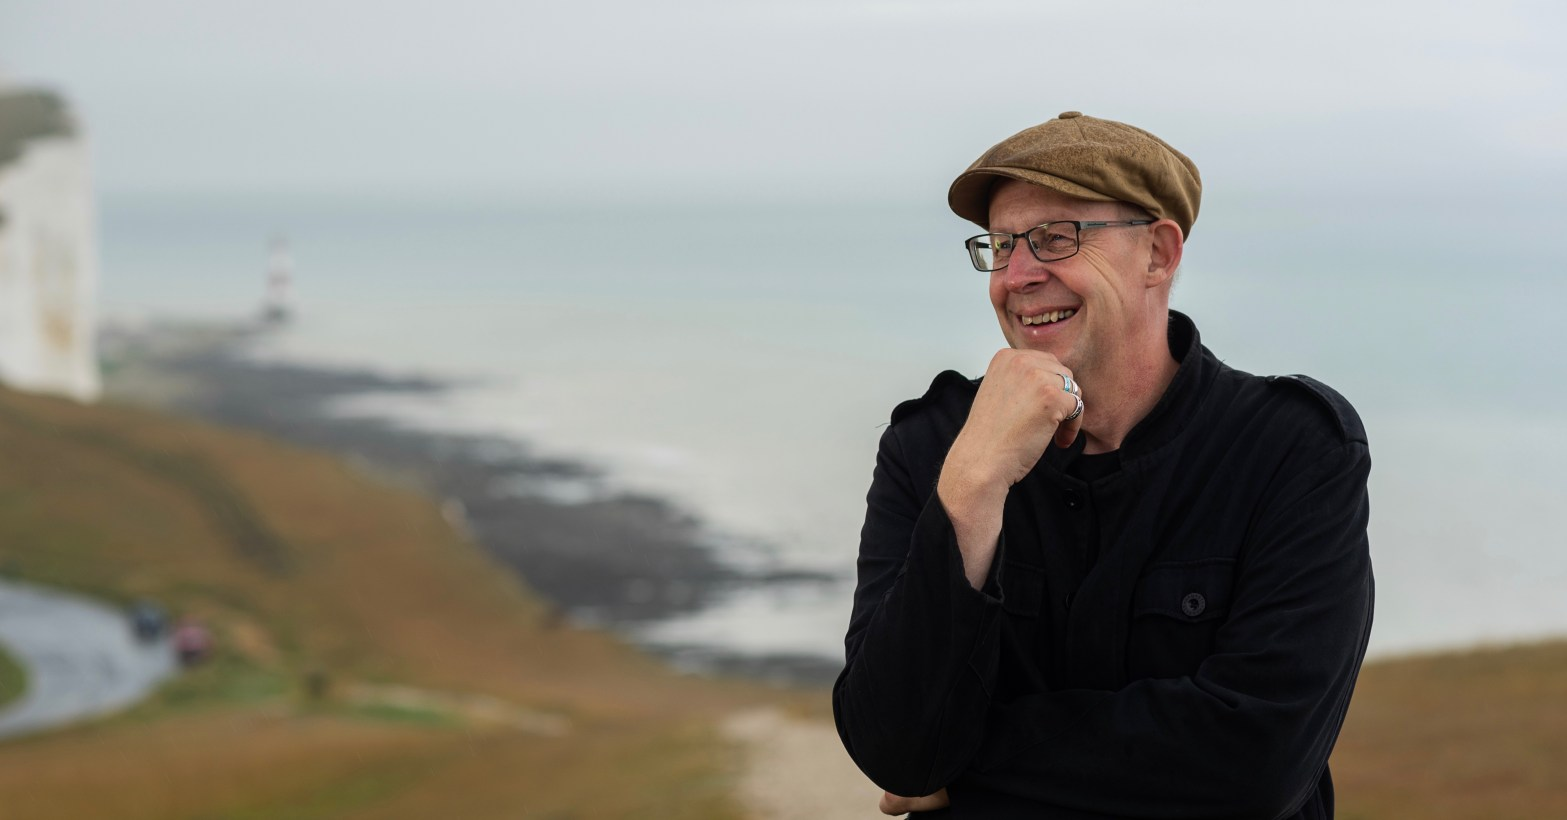 Cole Moreton award-winning author, journalist and broadcaster pictured at Beachy Head where his novel The Light Keeper is set